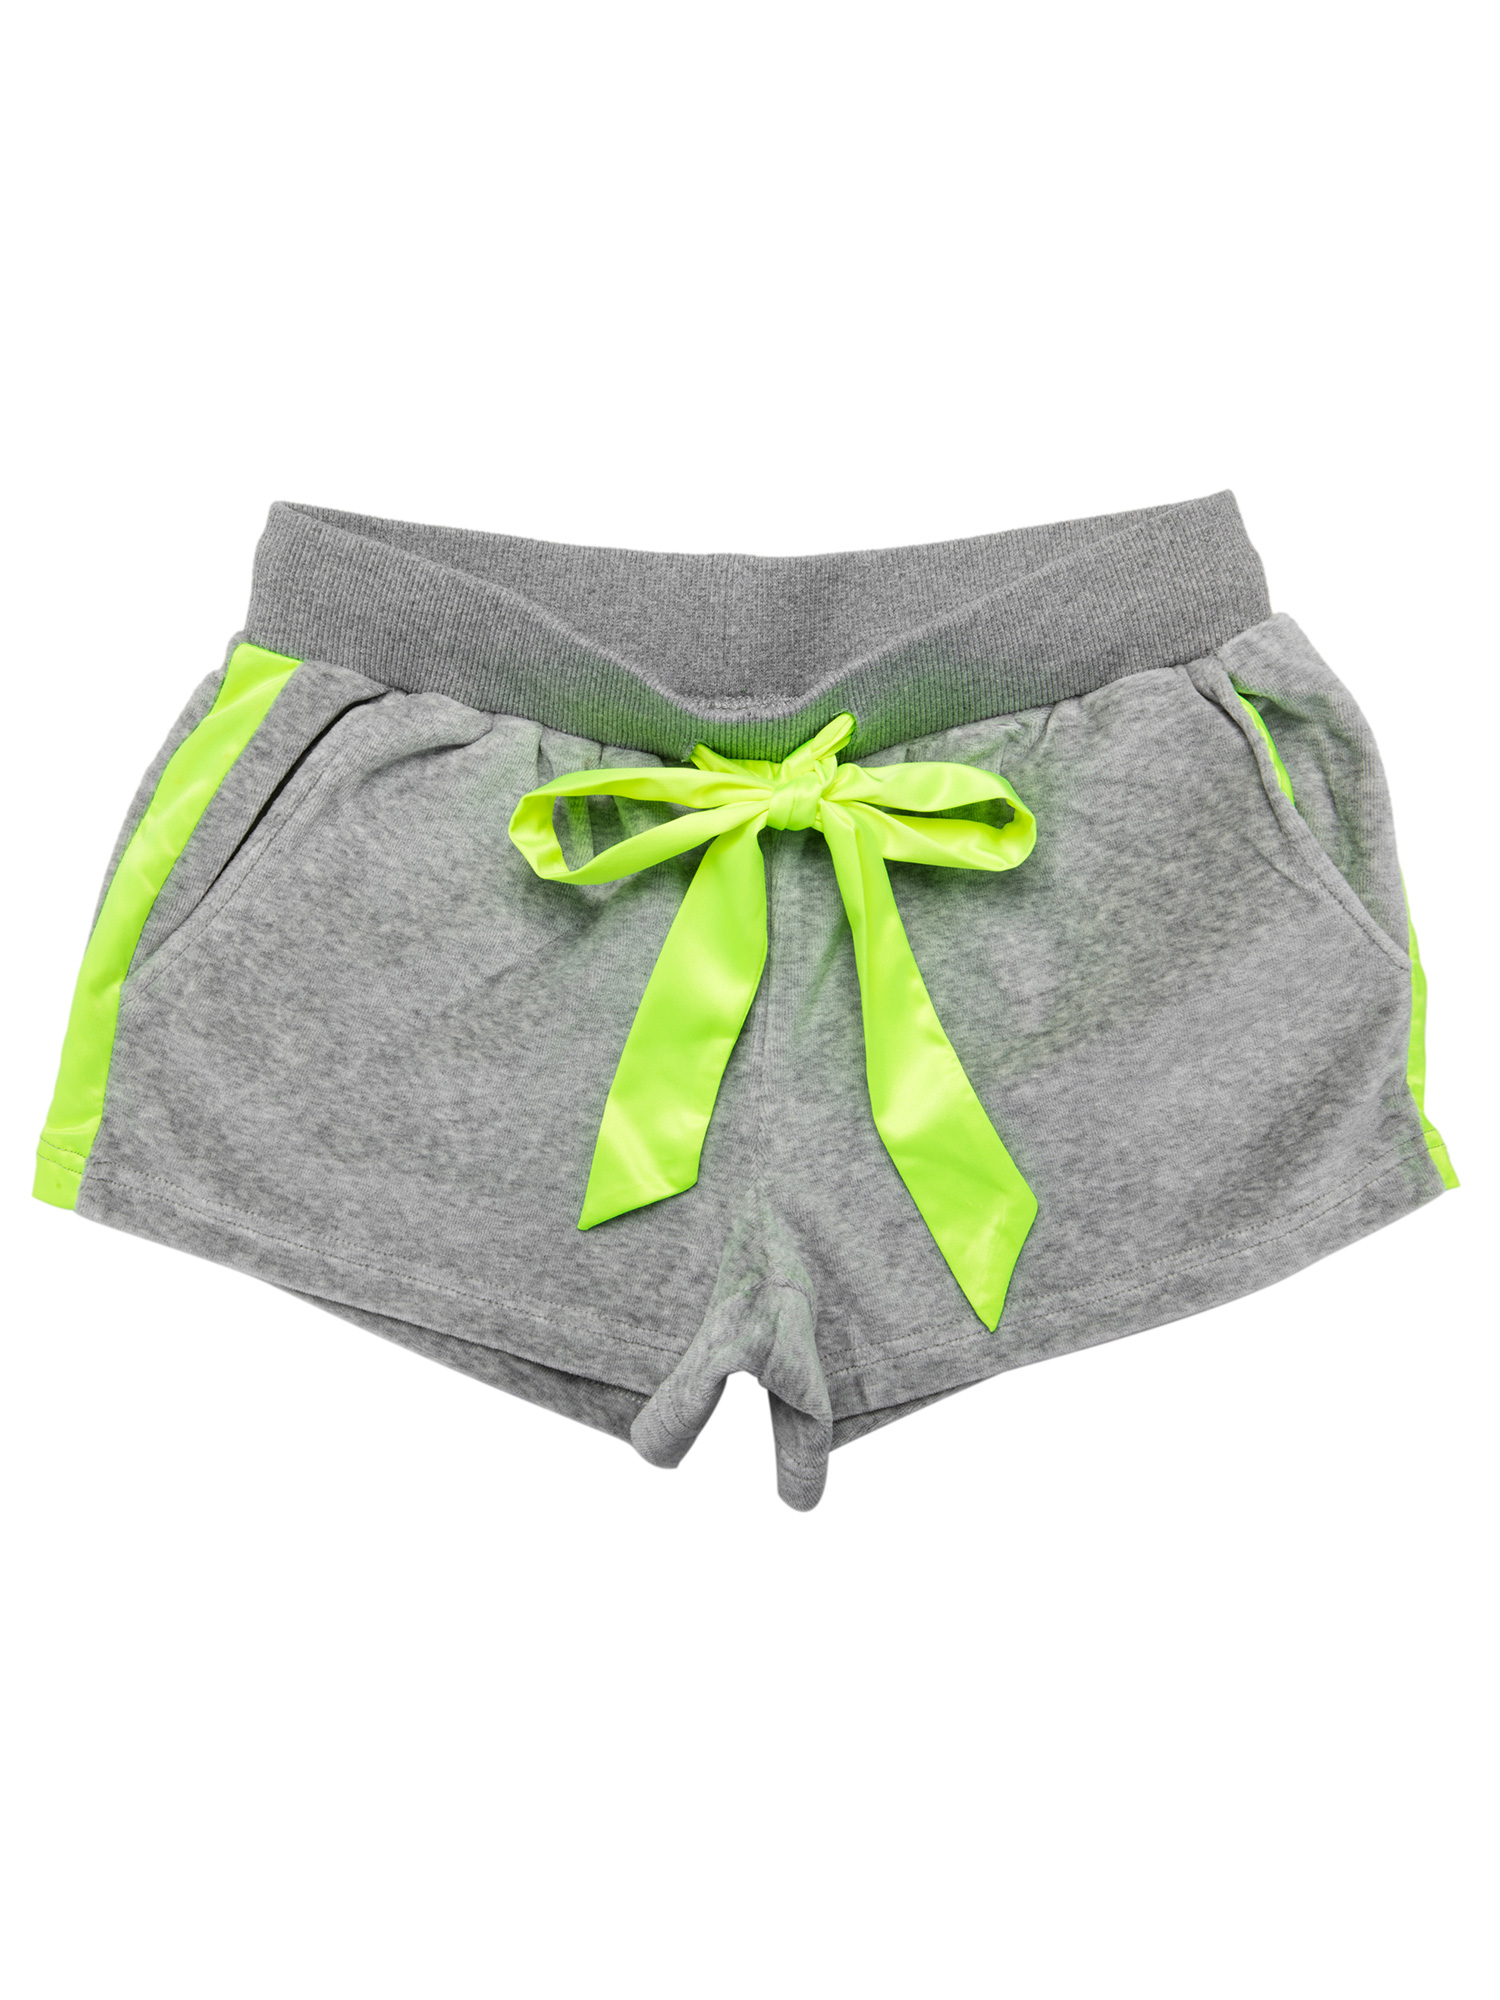 Workout Shorts for Women,Yoga Gym Sport Shorts Workout Running Short Pants for Women No Drawstring Solid Color Shorts